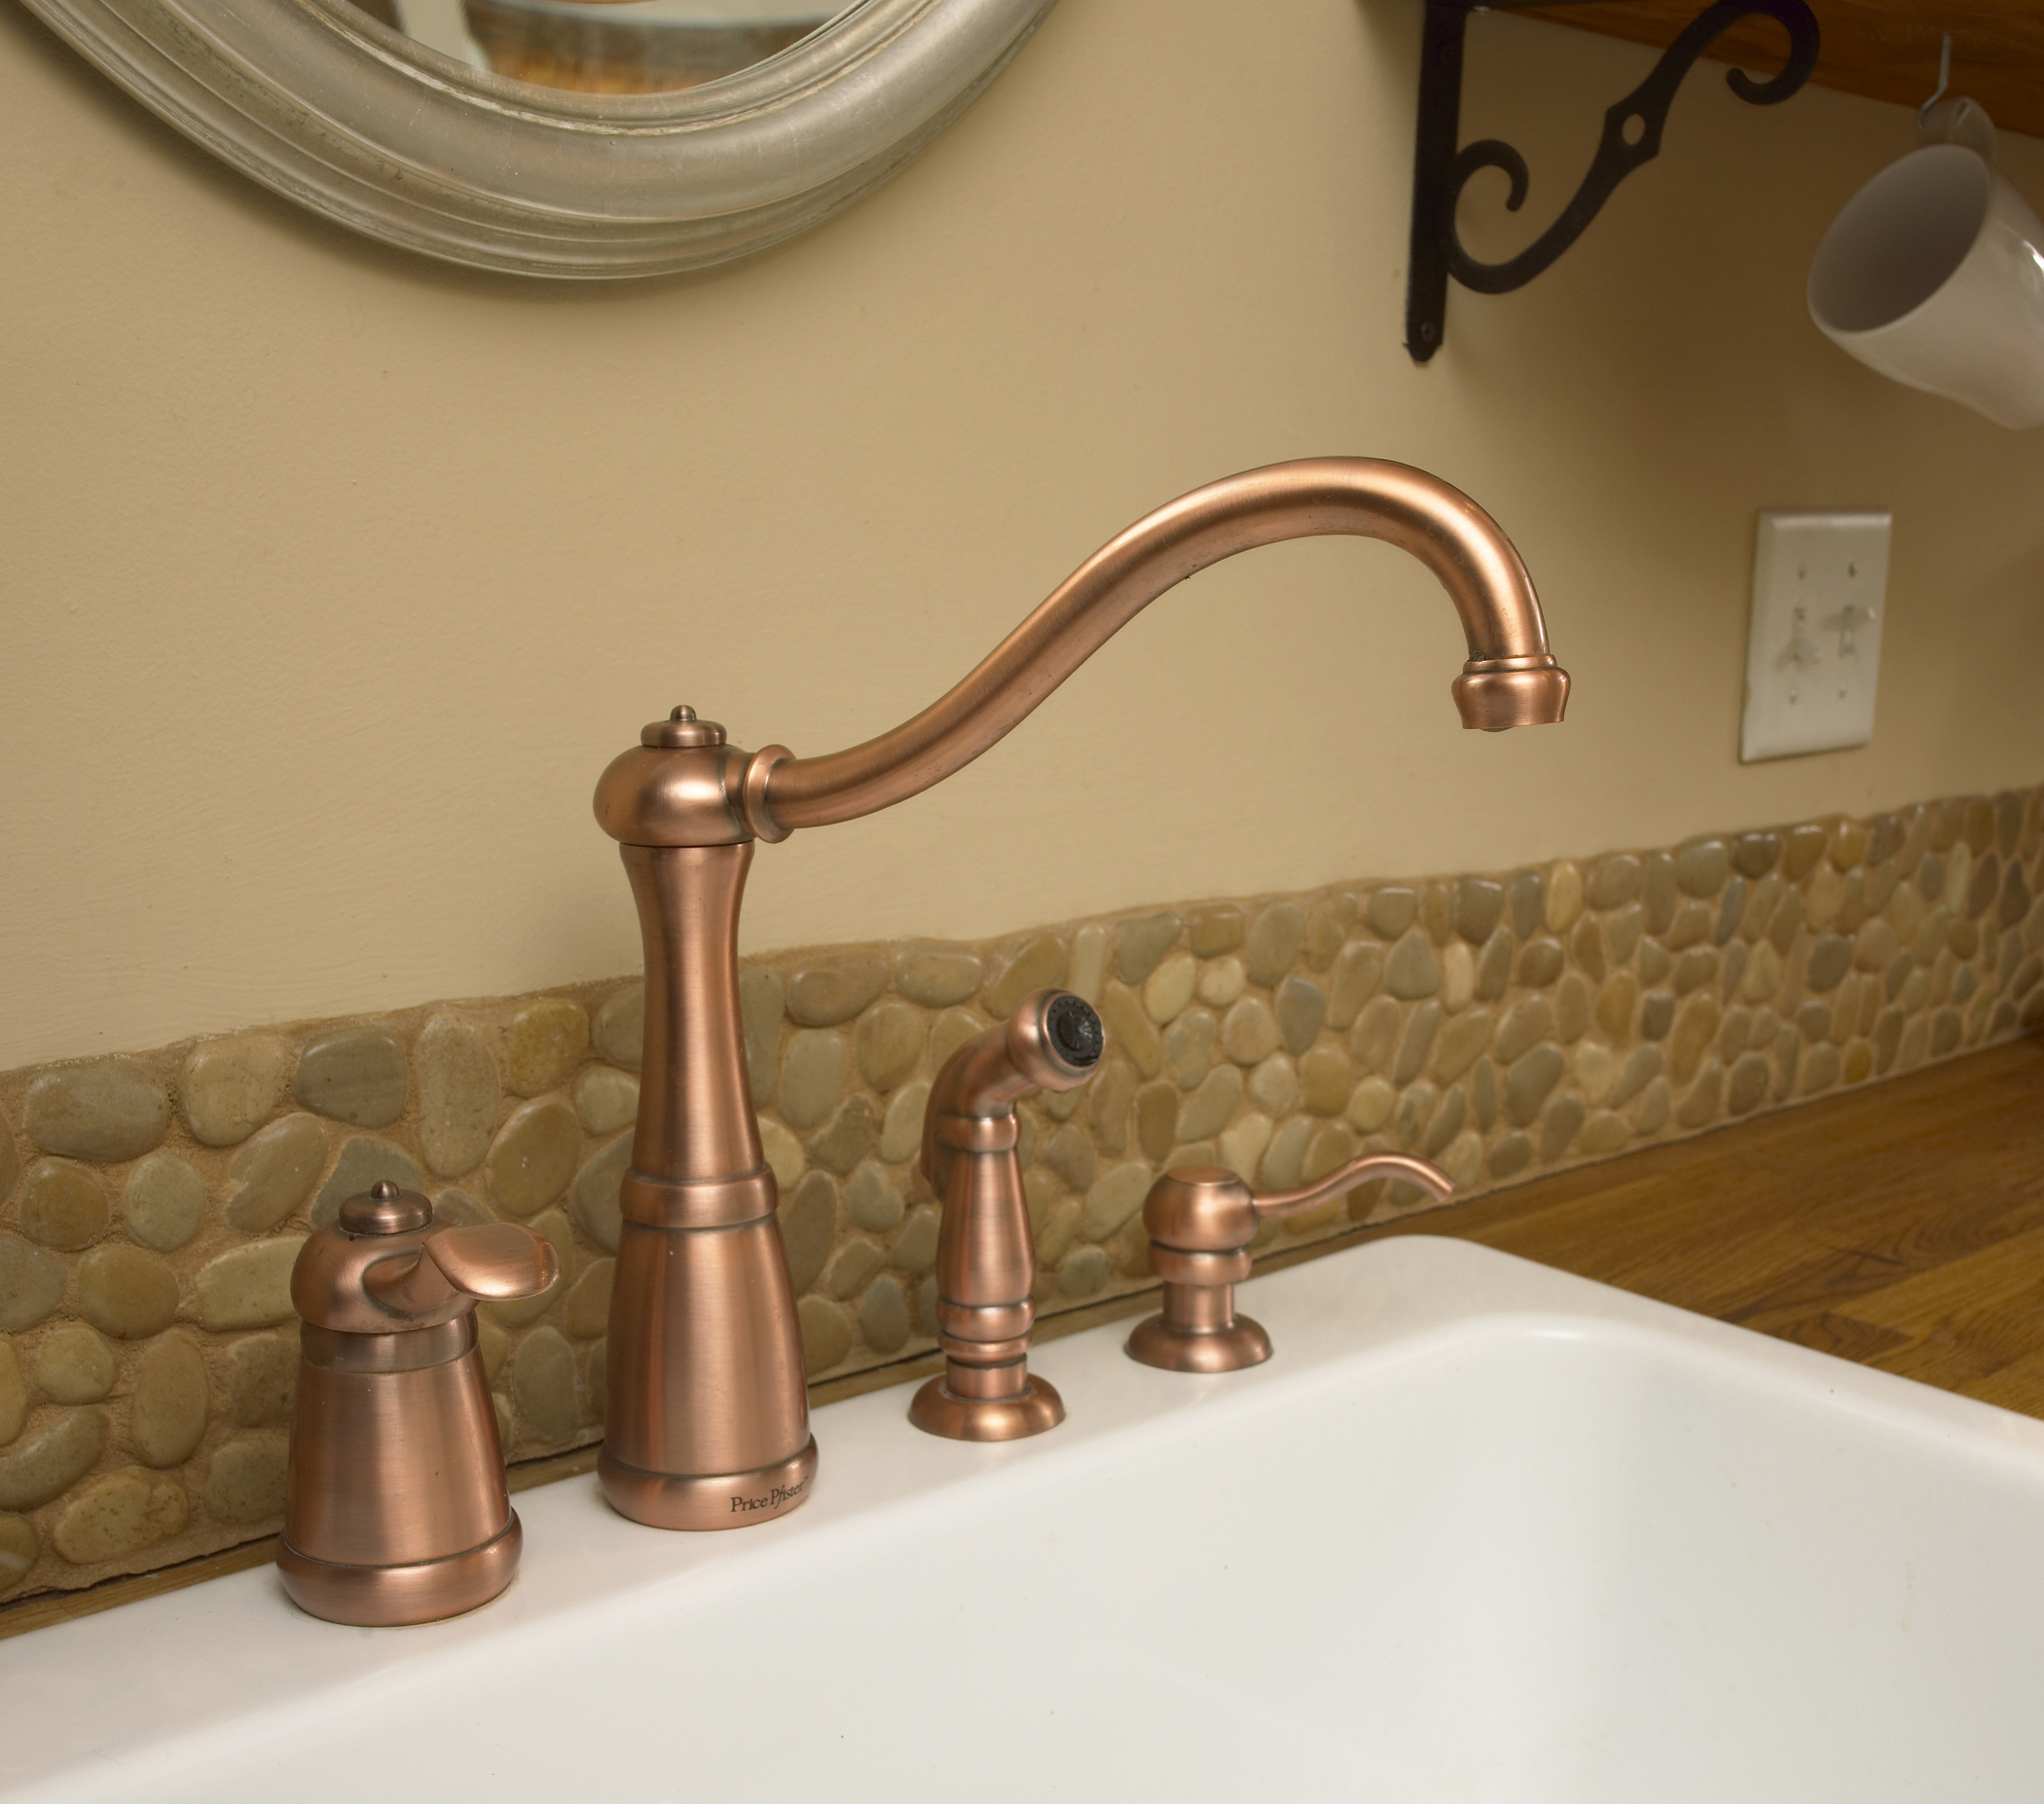 Rachel Kate Design Rustic Remodel copper faucet